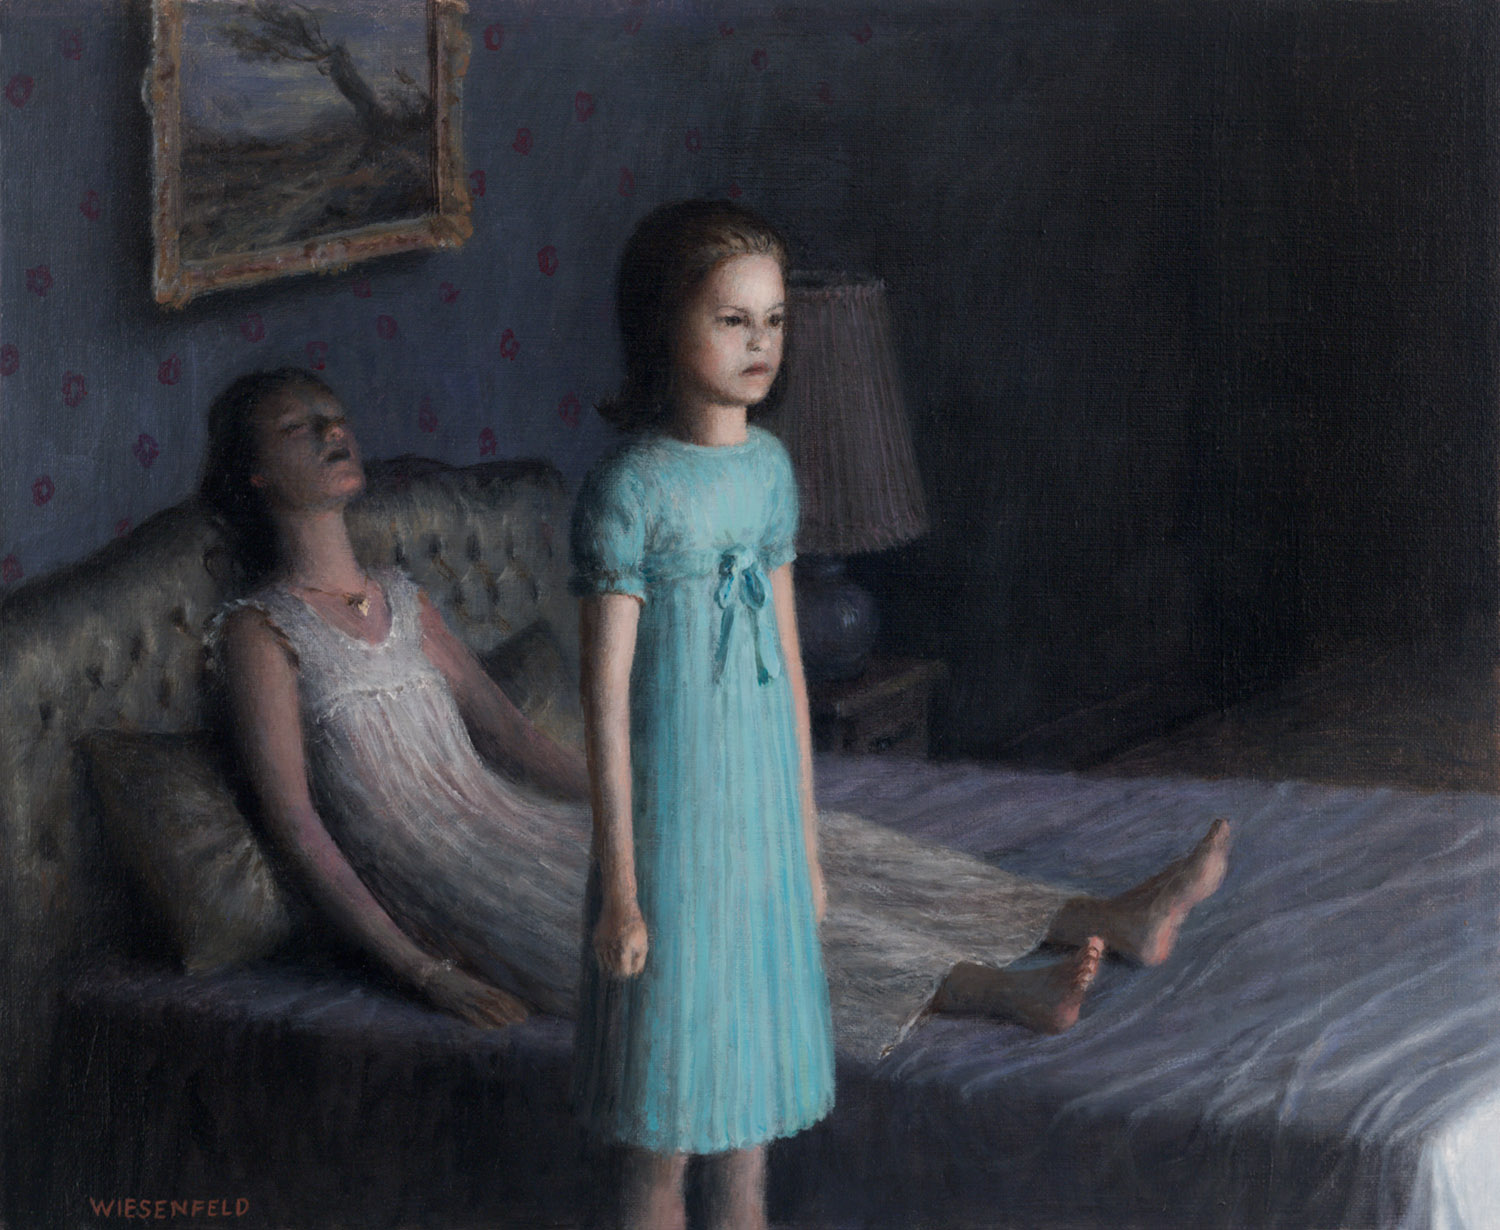 Guest, oil on canvas, 15 x 18.5 in / 38 x 47 cm, 2010